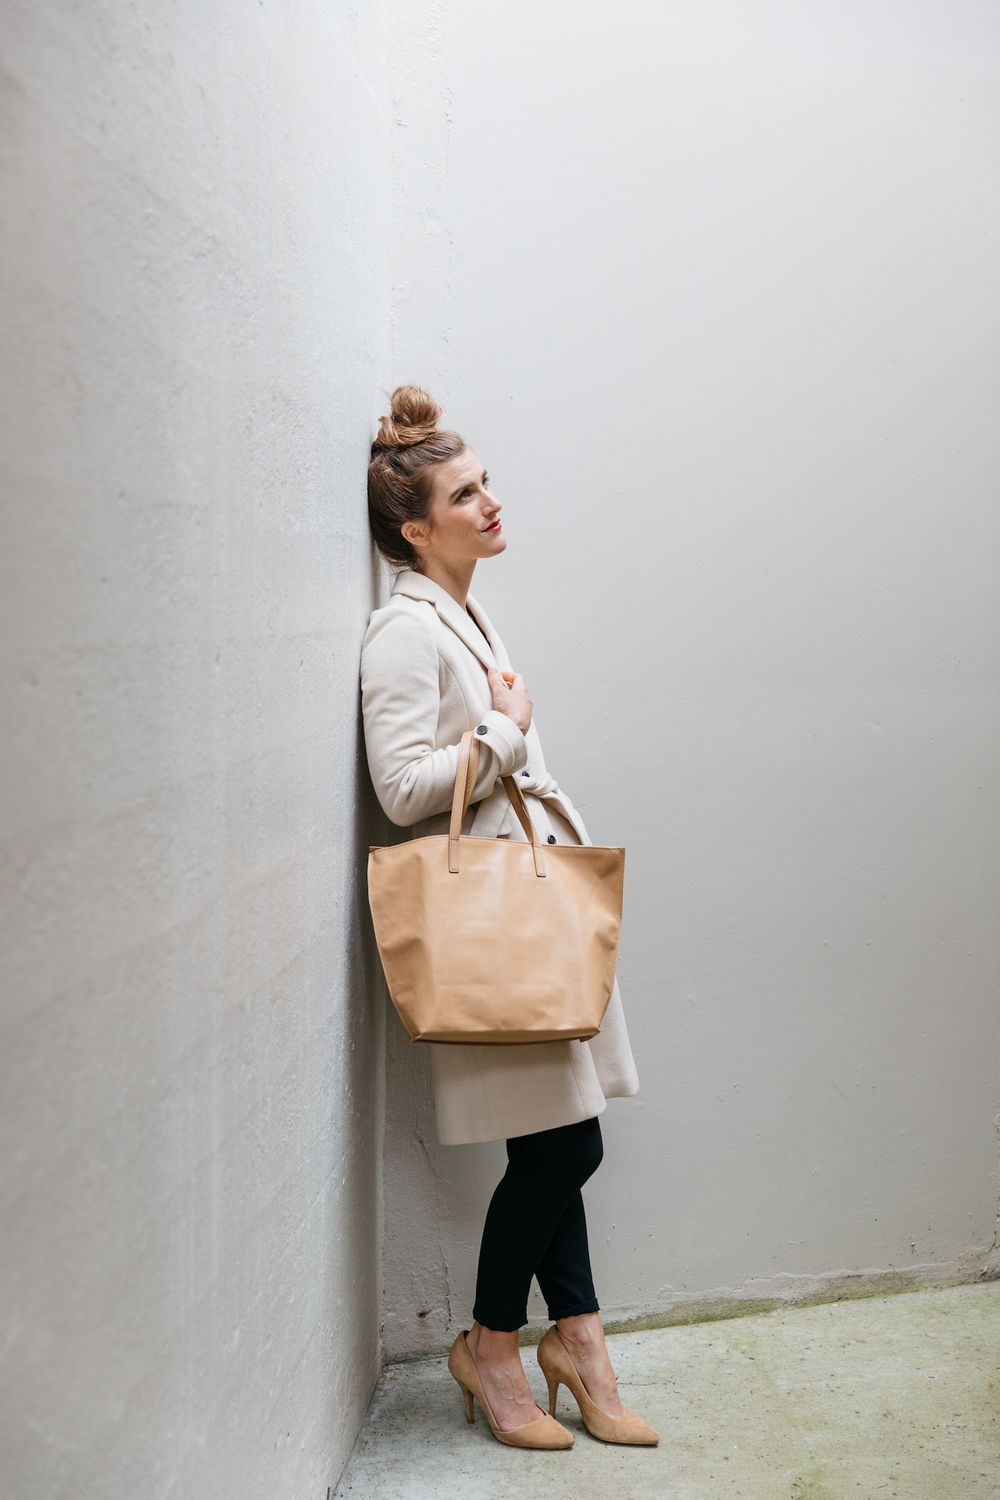 Luxury Bags That Inspire    The Soulful Collection